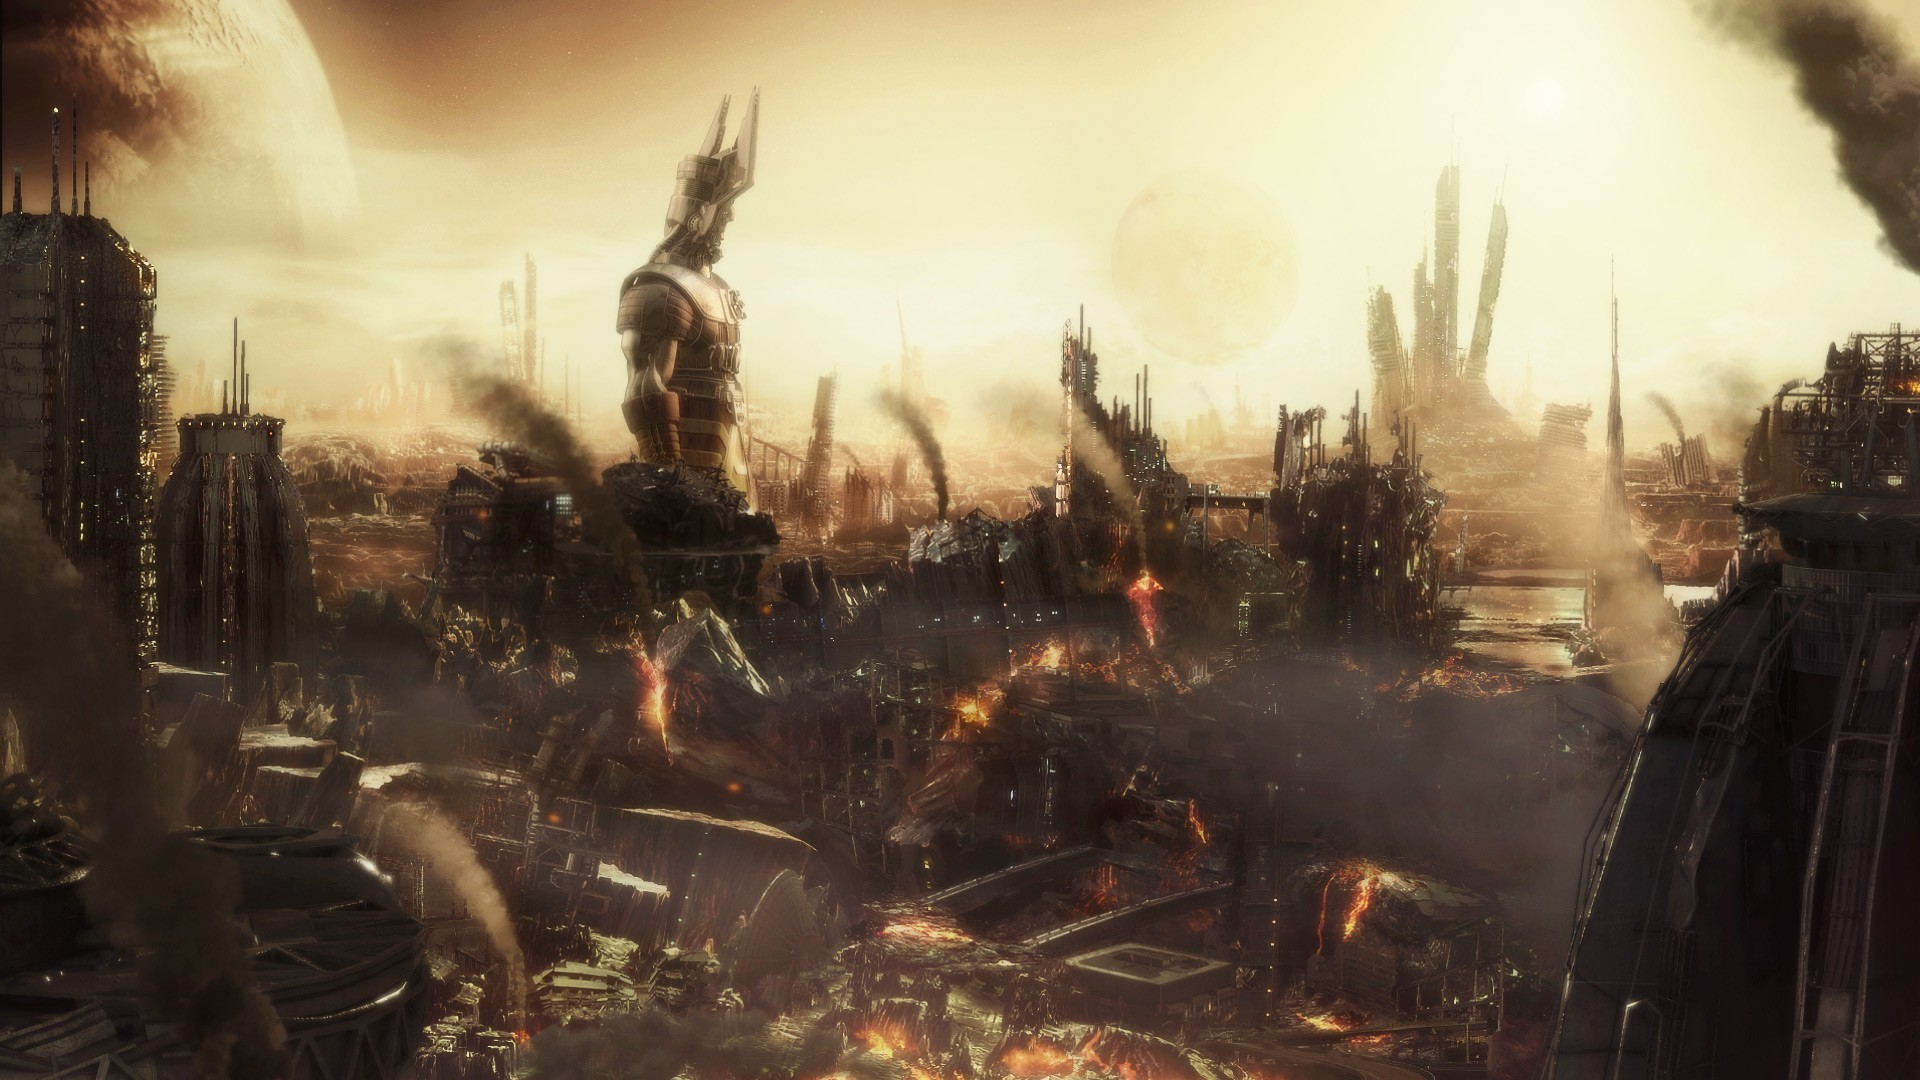 Destroyed city wallpaper   37844 1920x1080